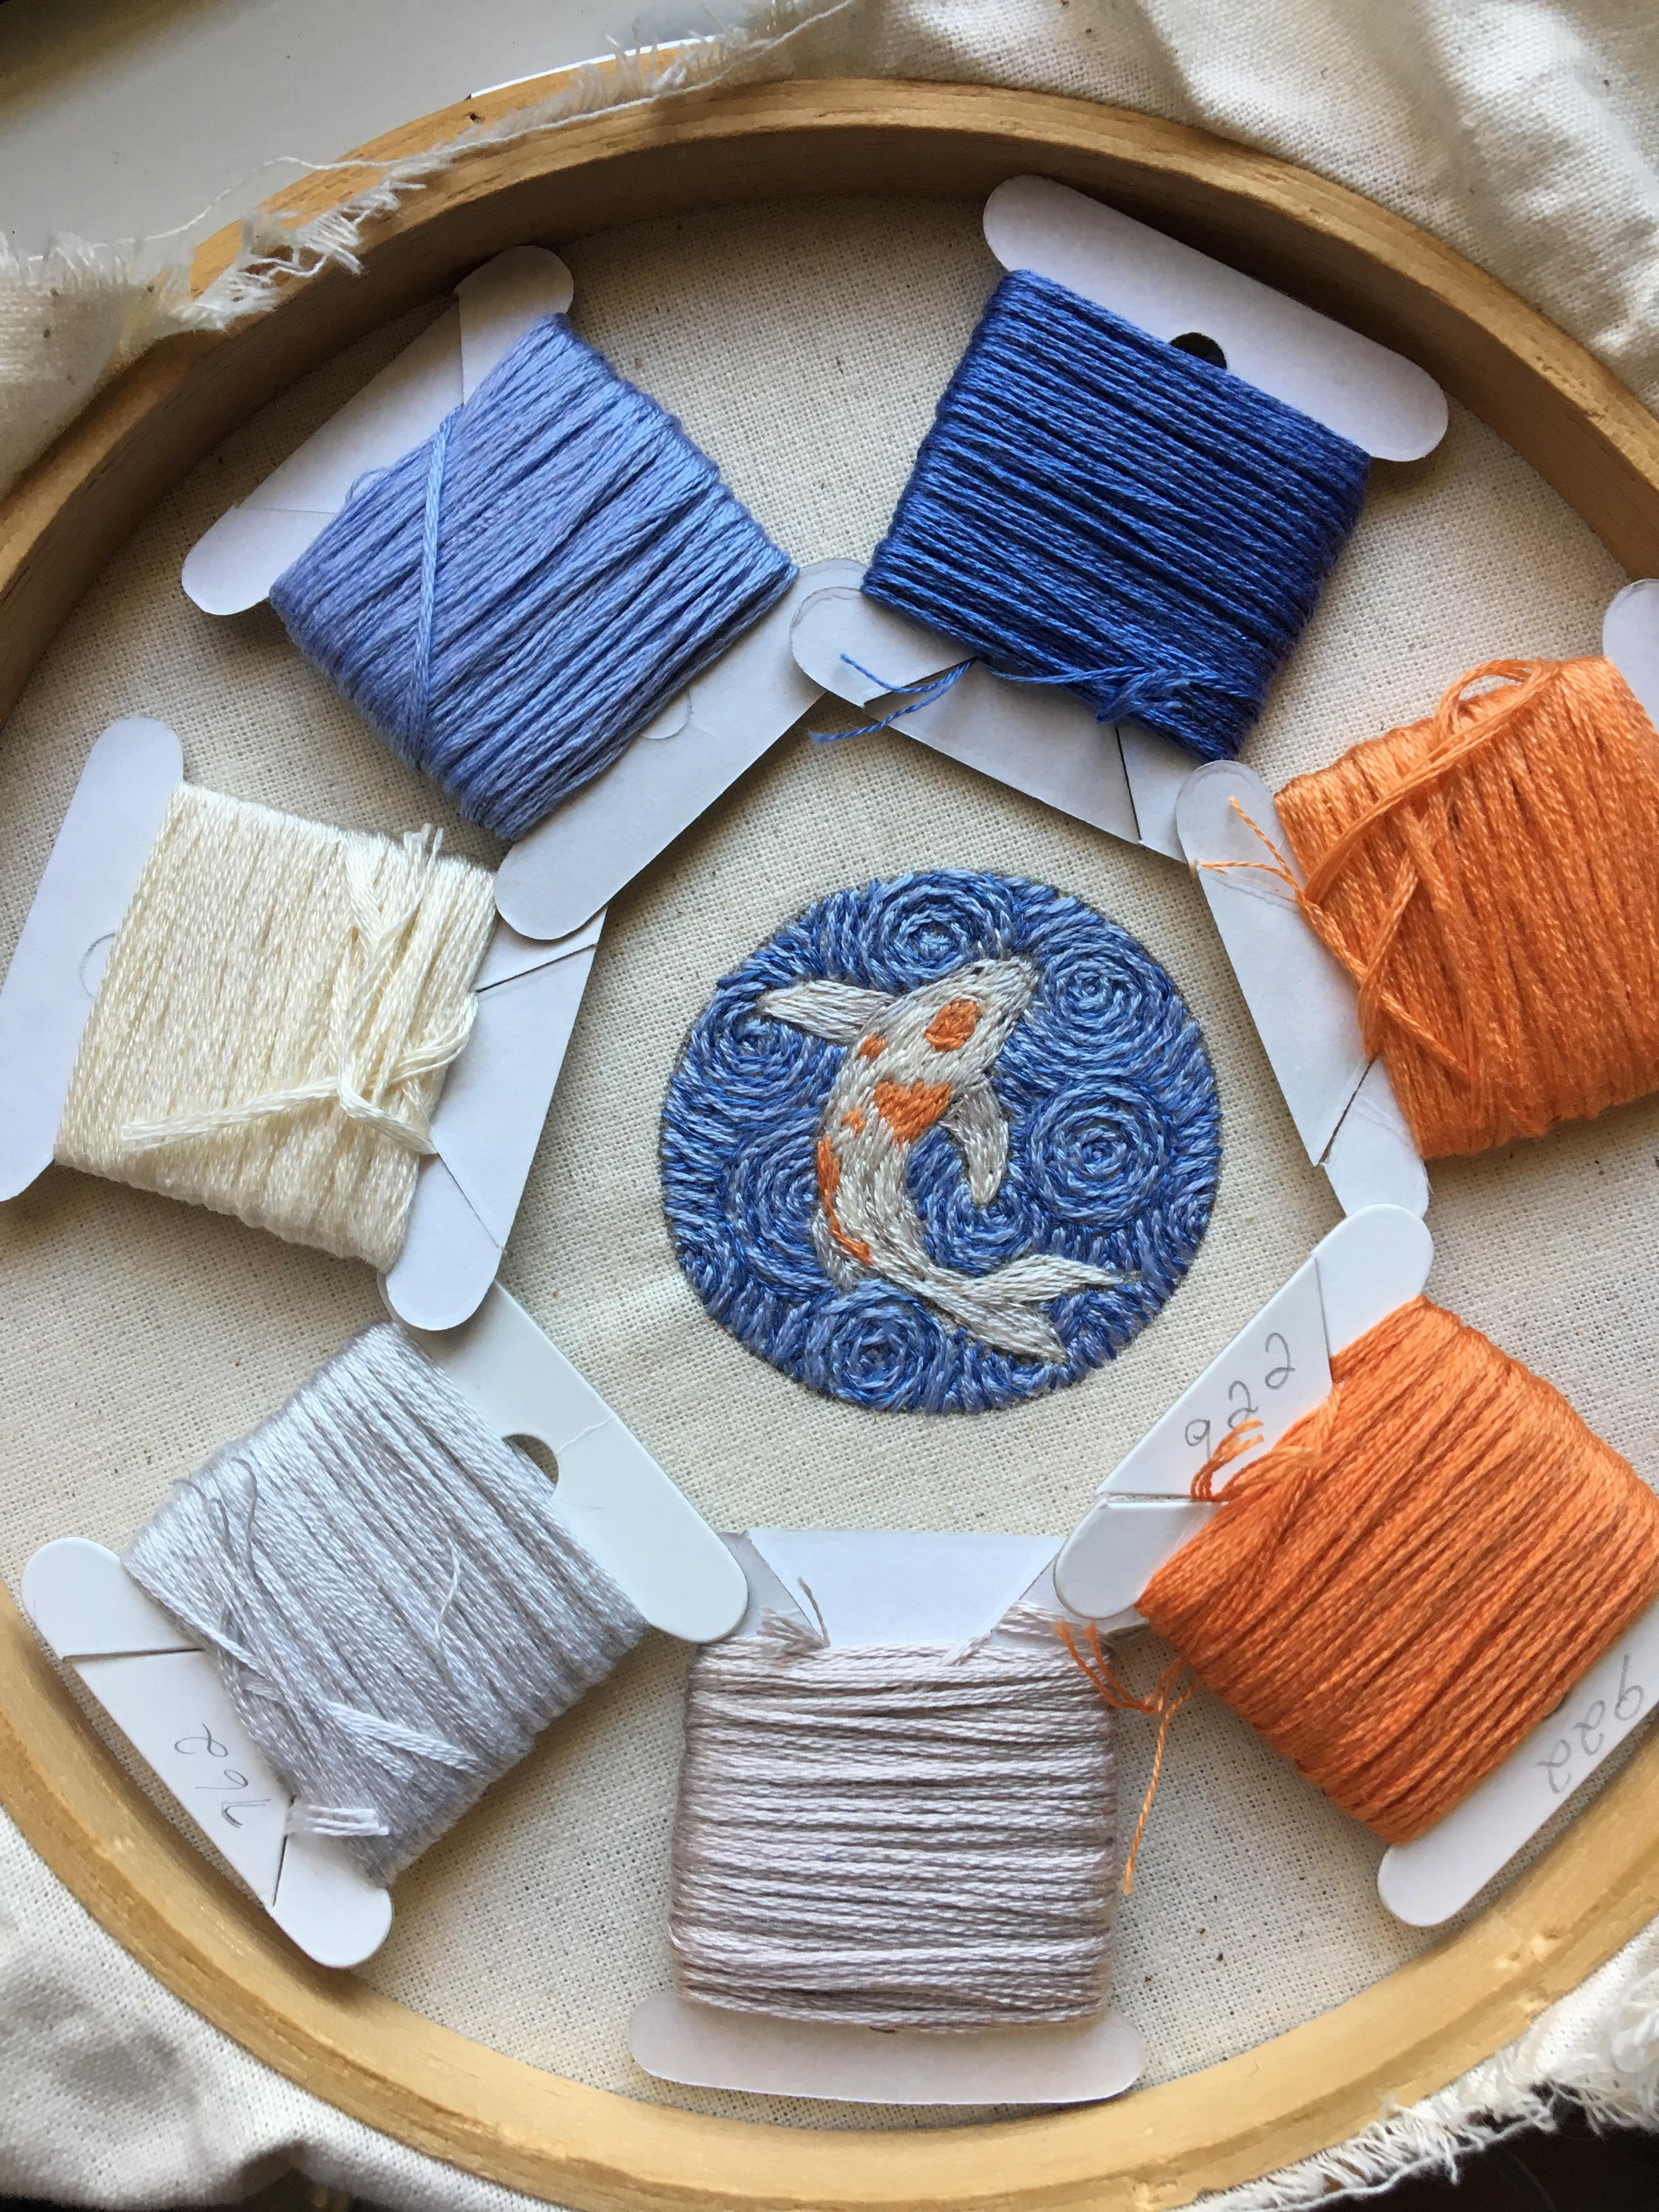 Koi Fish Embroidery : embroidery, Recent, Started, Getting, Embroidery,, Sewed., Planning, Little, Patch, Soon., Sewing